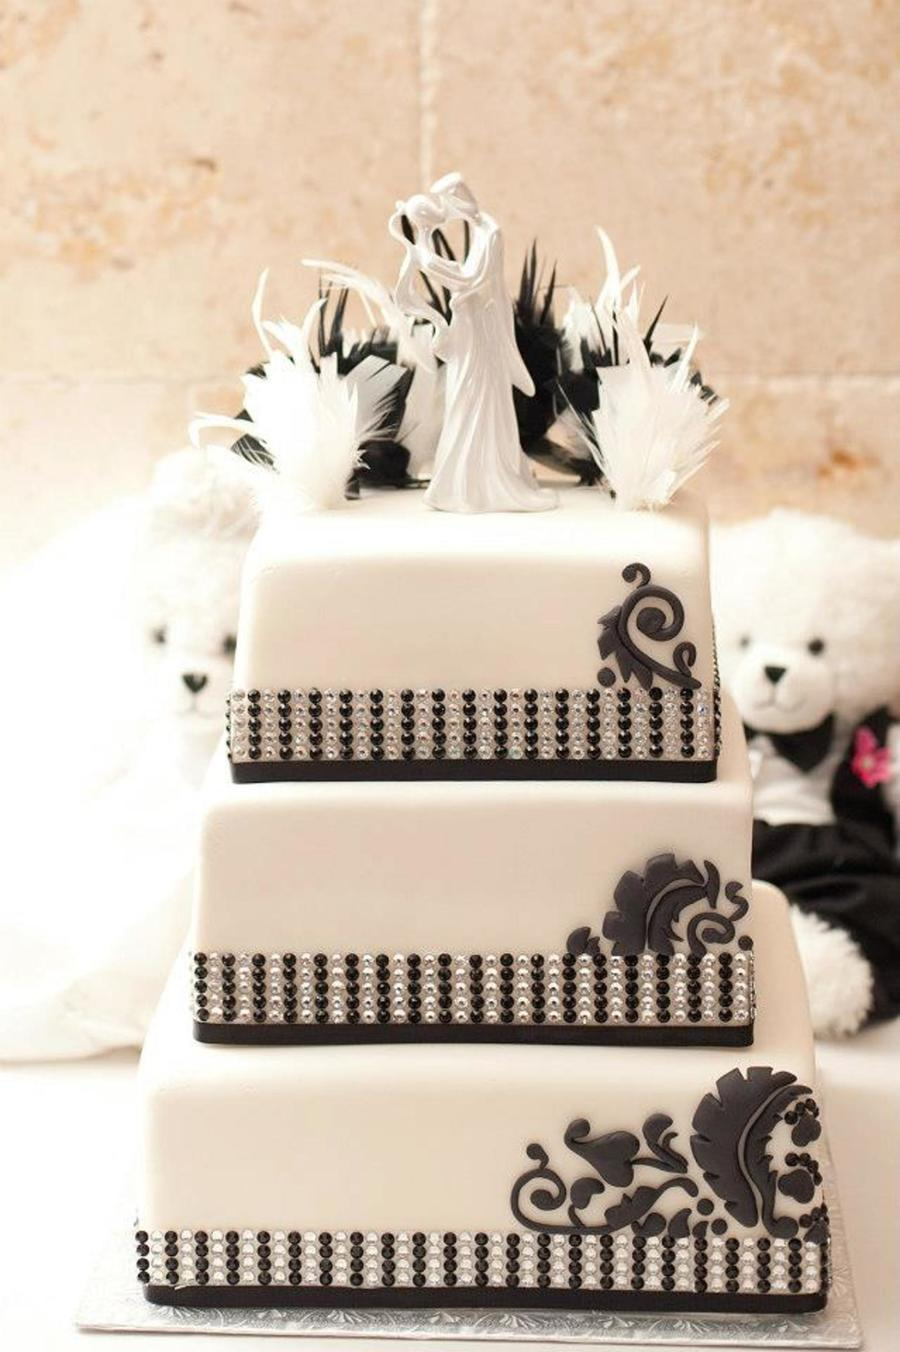 Black And White Wedding Cake Design Based On Wedding Invitations And ...